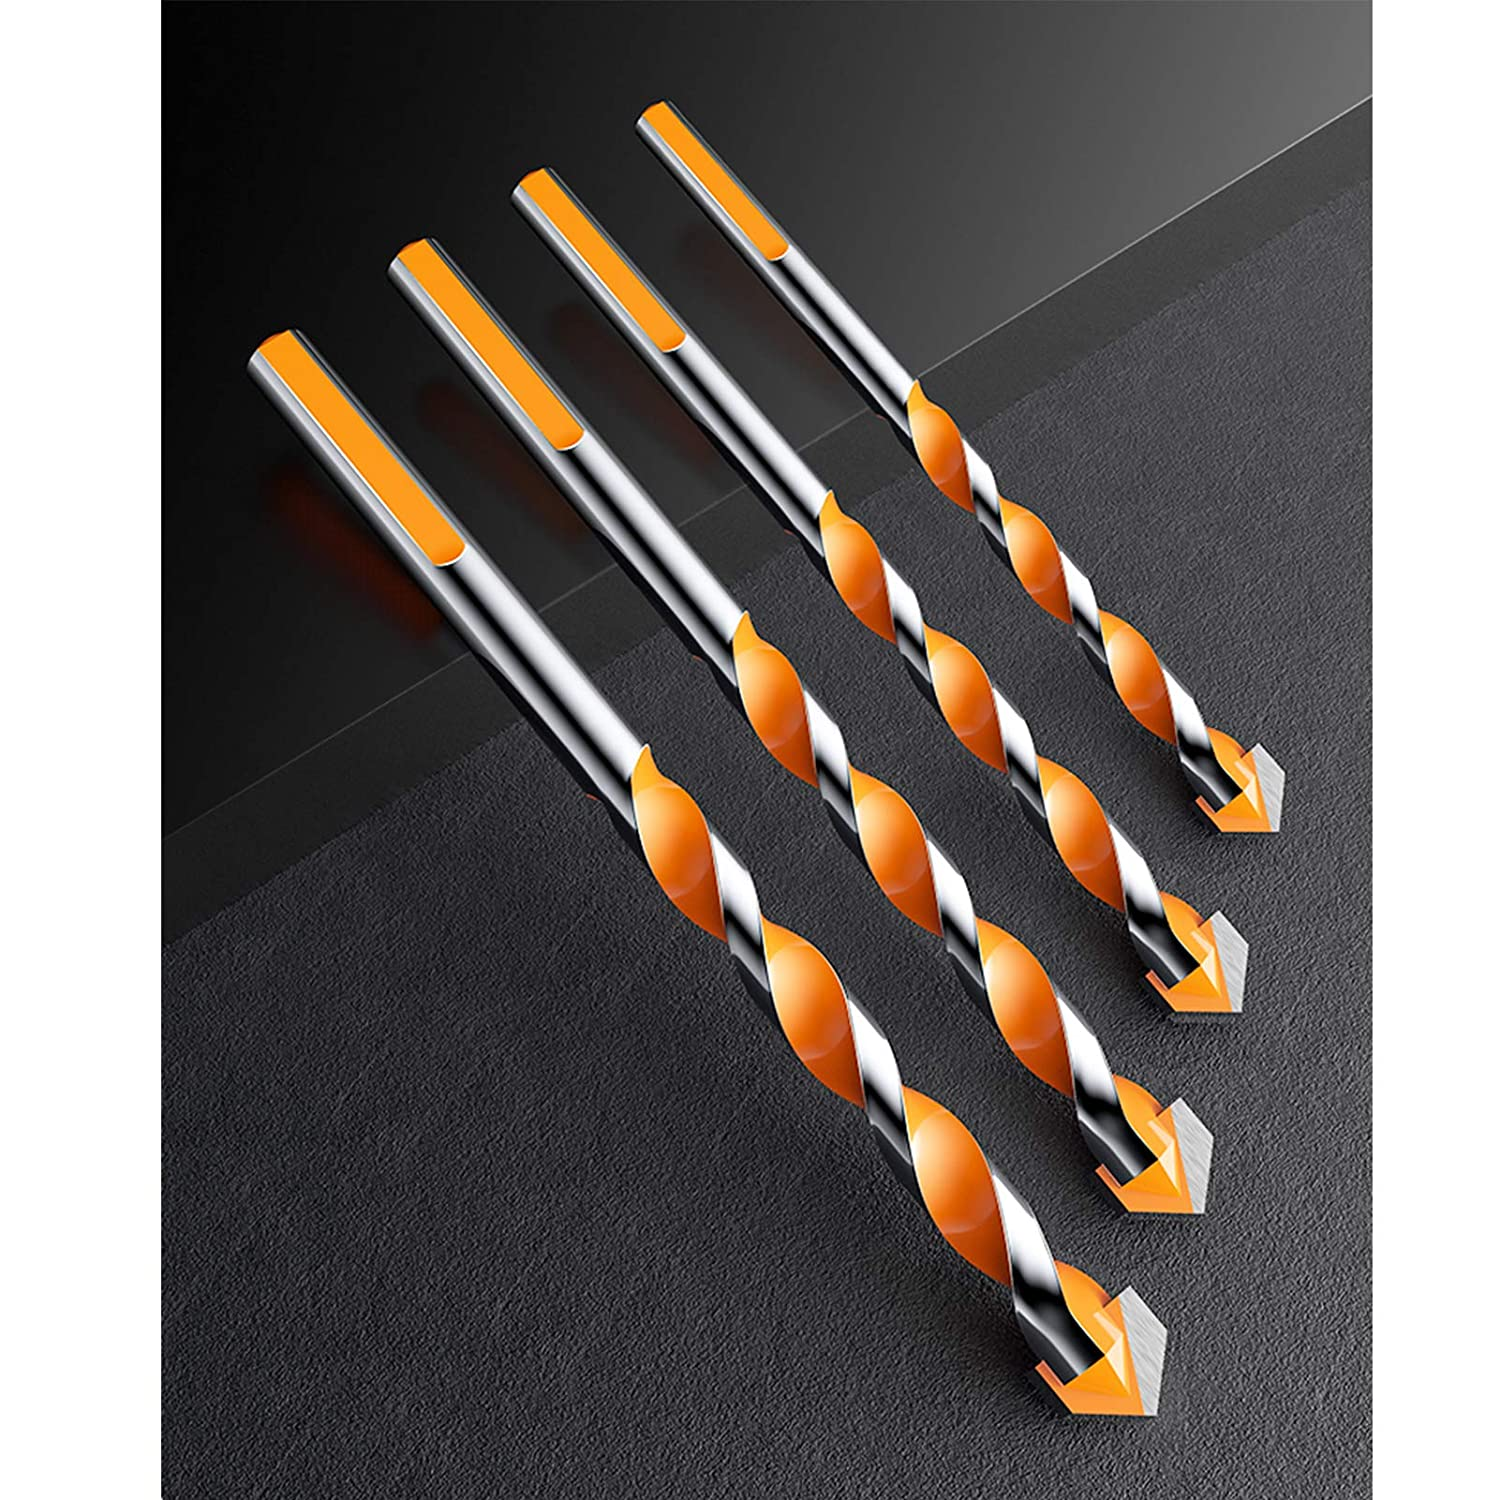 Glass Concrete Brick 6, 6, 8, 10, 12mm Plastic and Wood 5 Pcs Set Ultimate Punching Drill Bits Set with Tungsten Carbide Tip for Tile